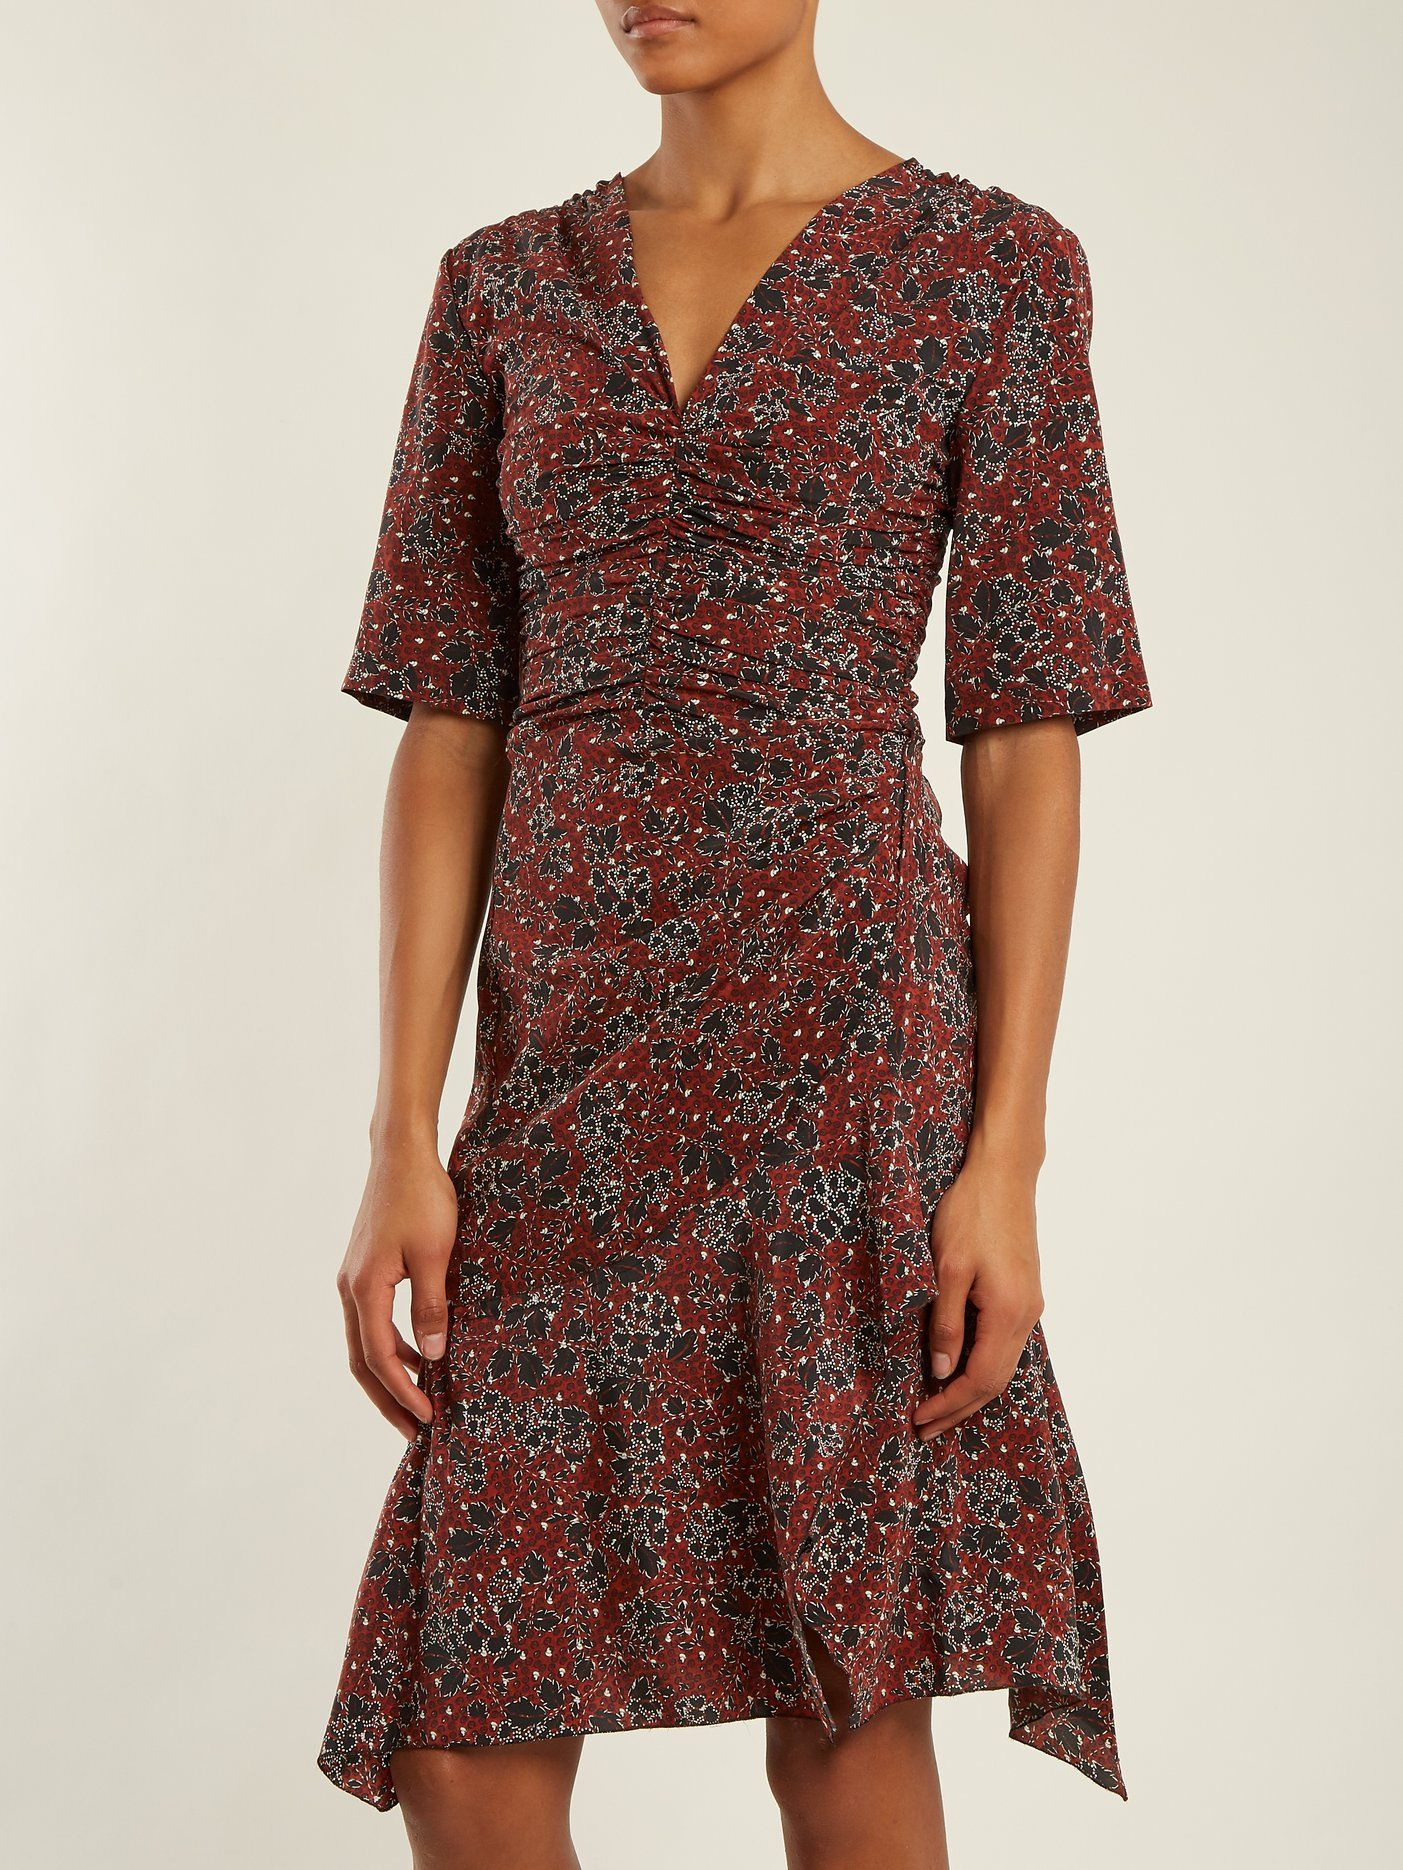 41155465a9 Click here to buy Isabel Marant Brodie ruched floral-print stretch-silk  dress at MATCHESFASHION.COM